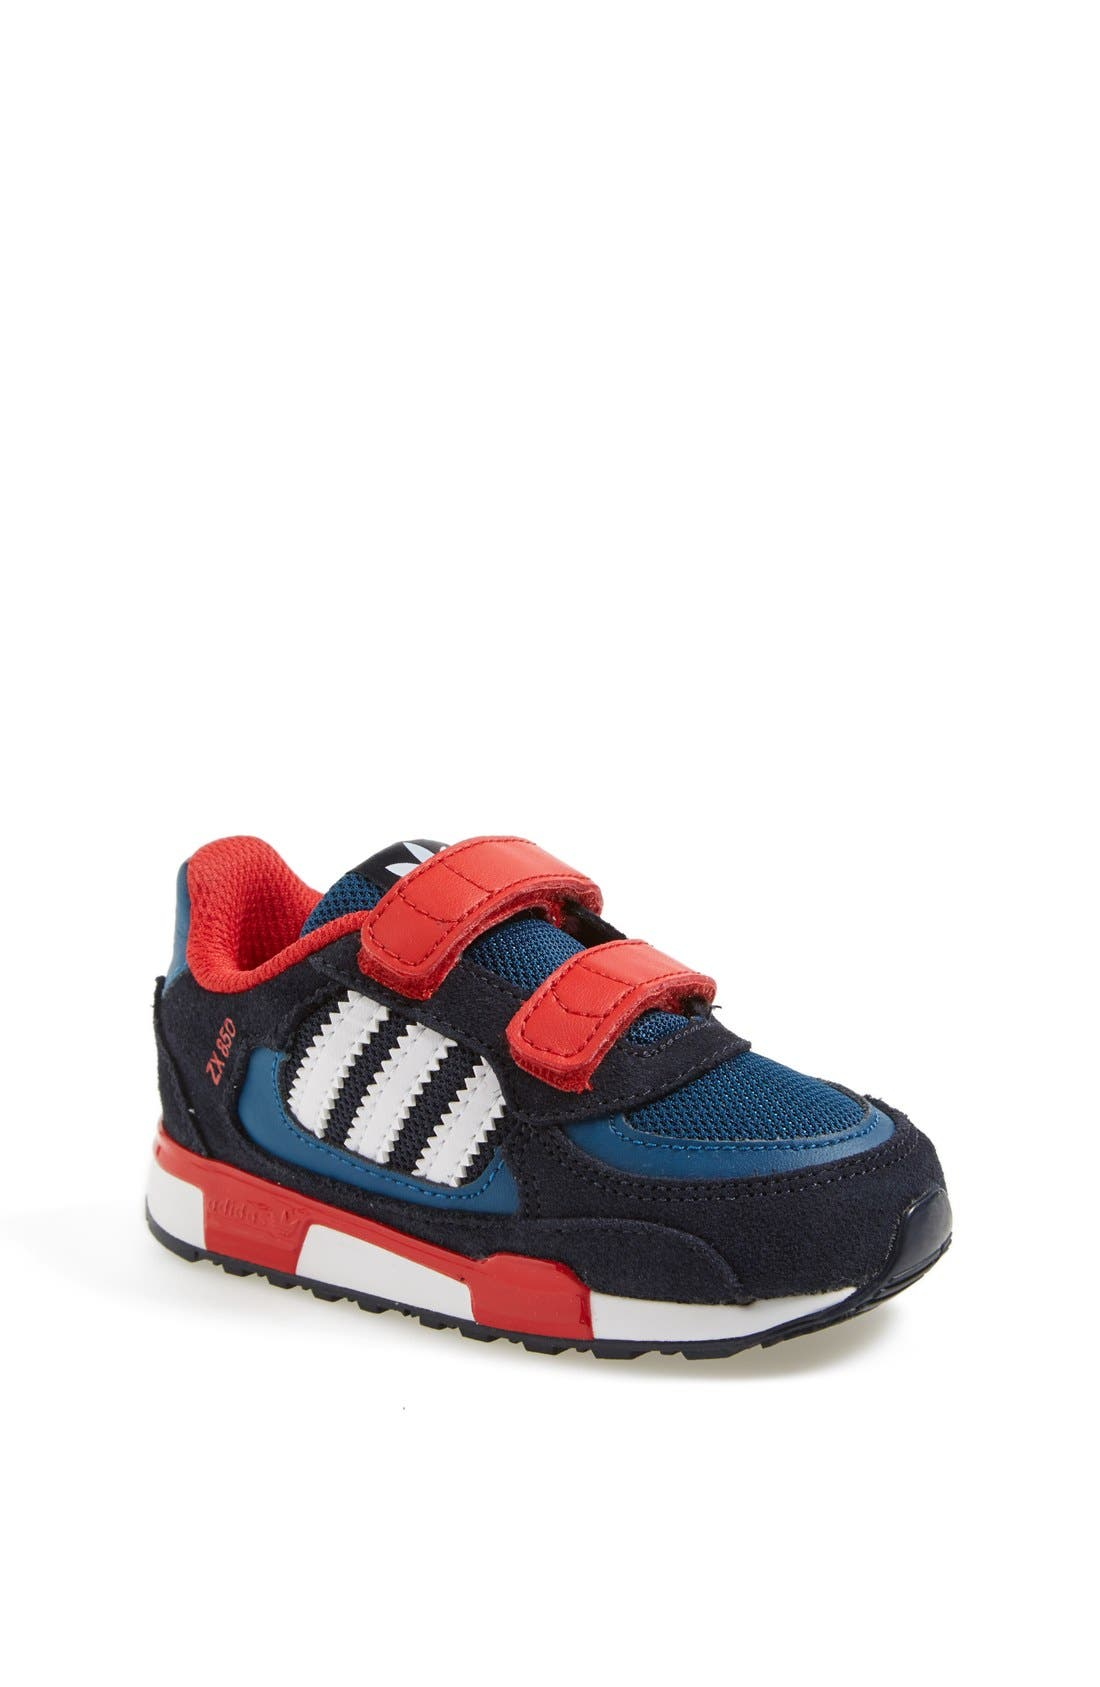 Alternate Image 1 Selected - adidas 'ZXZ 850' Sneaker (Baby, Walker & Toddler)